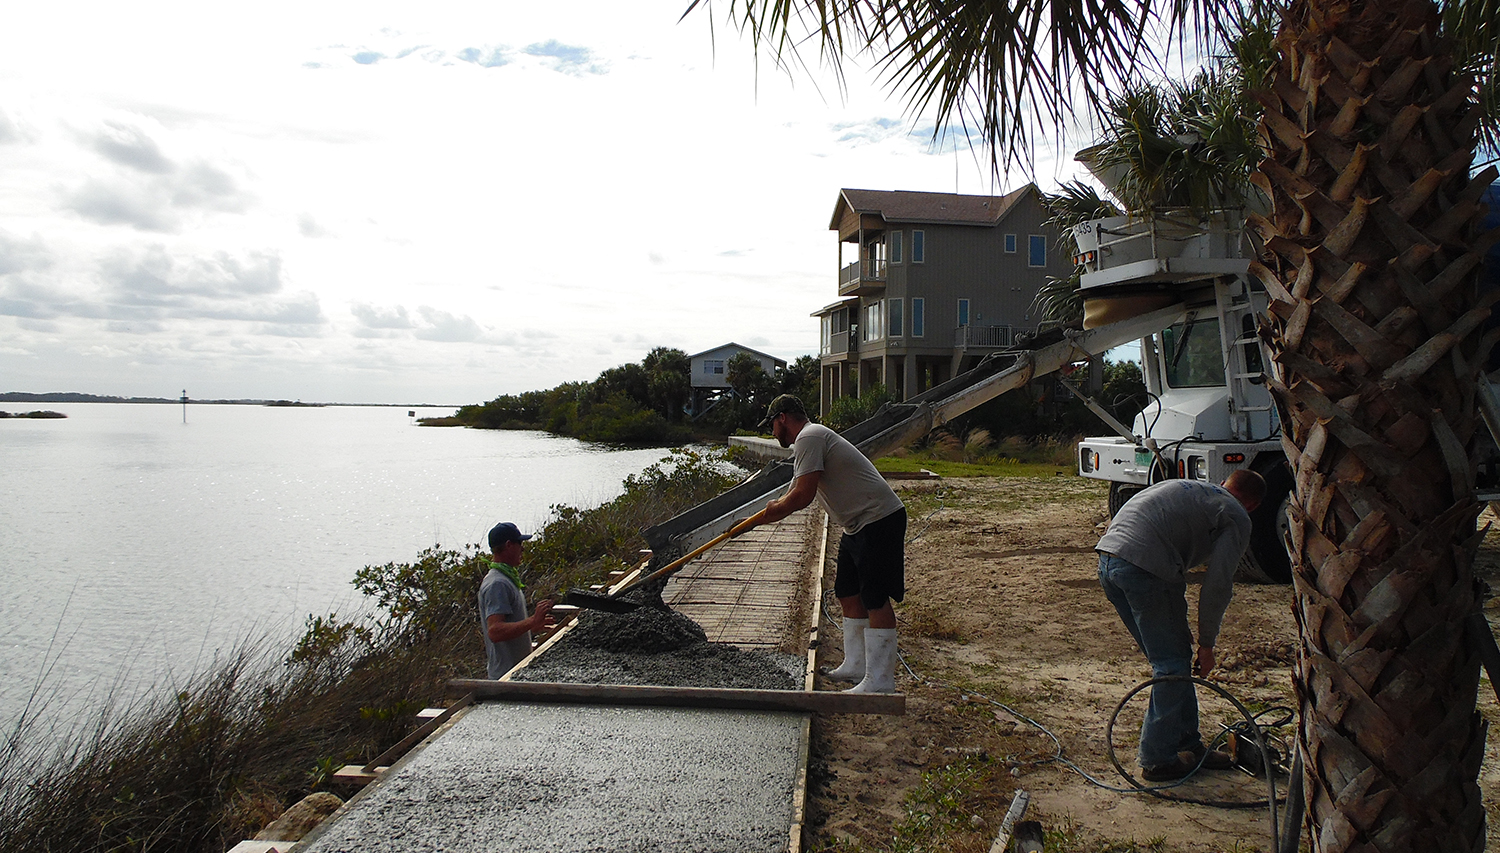 Pine Island - Spring Hill - Concrete Pour Walkway.jpg